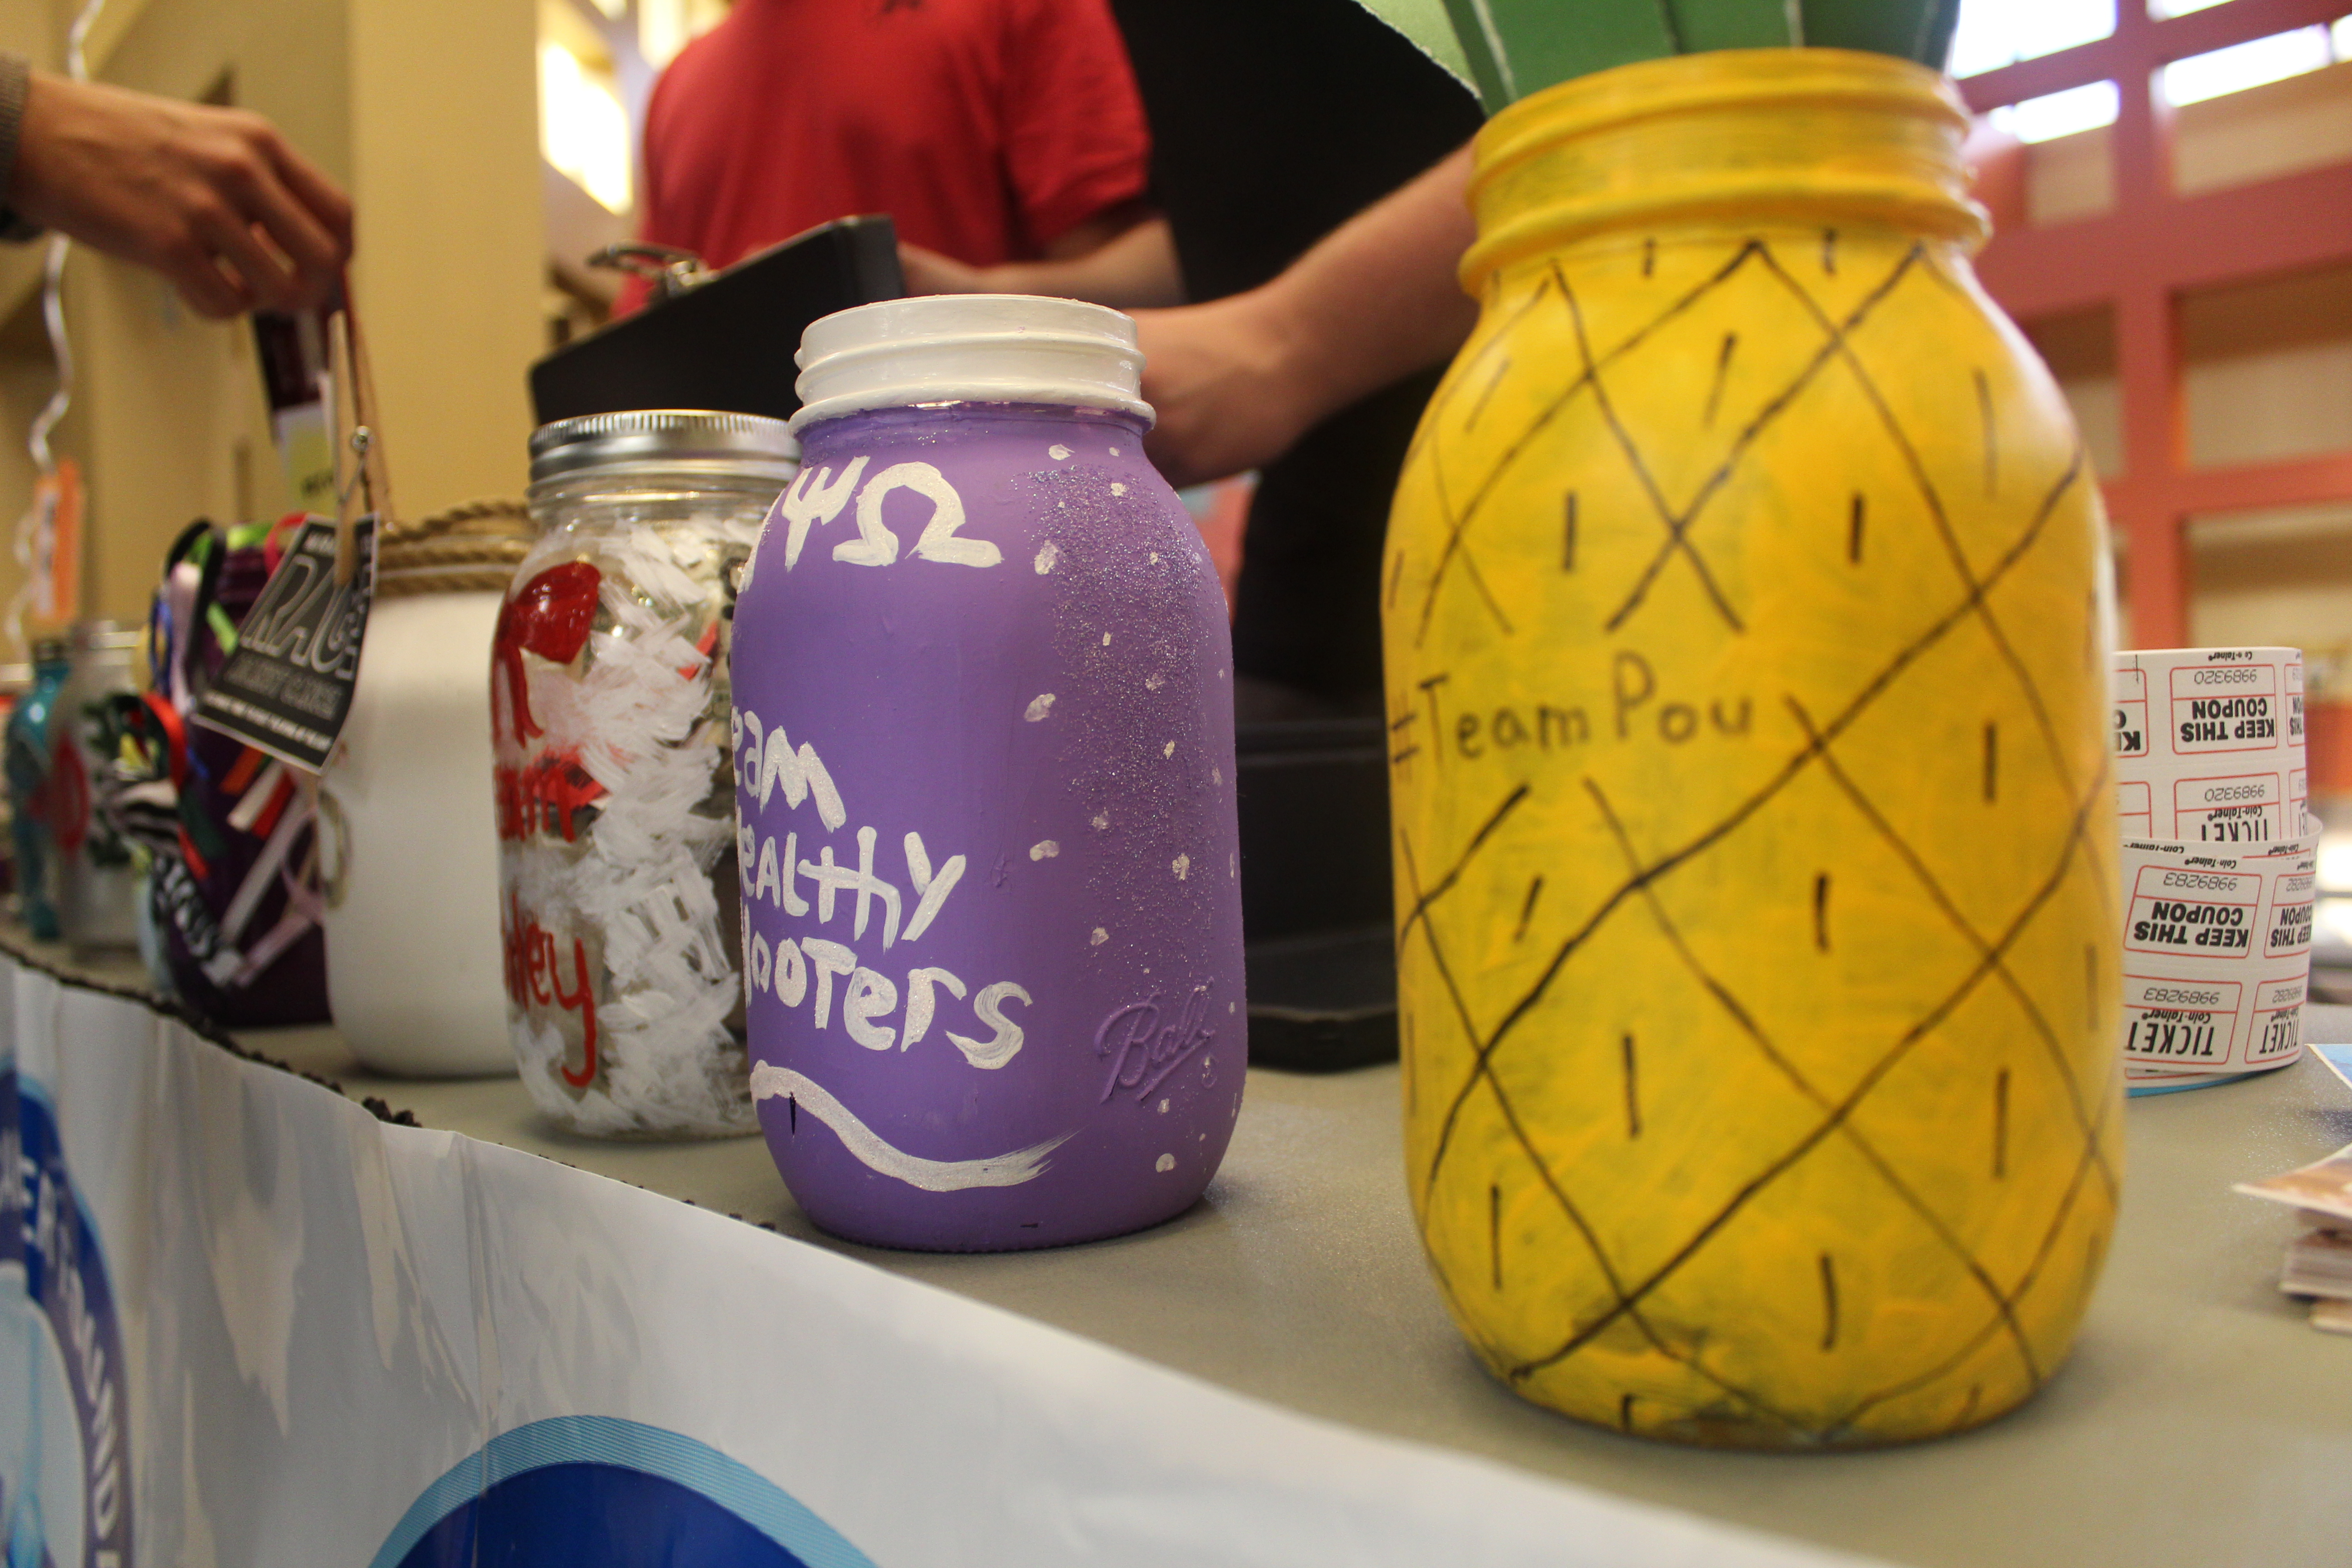 Donations for Derby Days are collected in creatively decorated jars. Photo courtesy of photo journalist Robin Nelson.